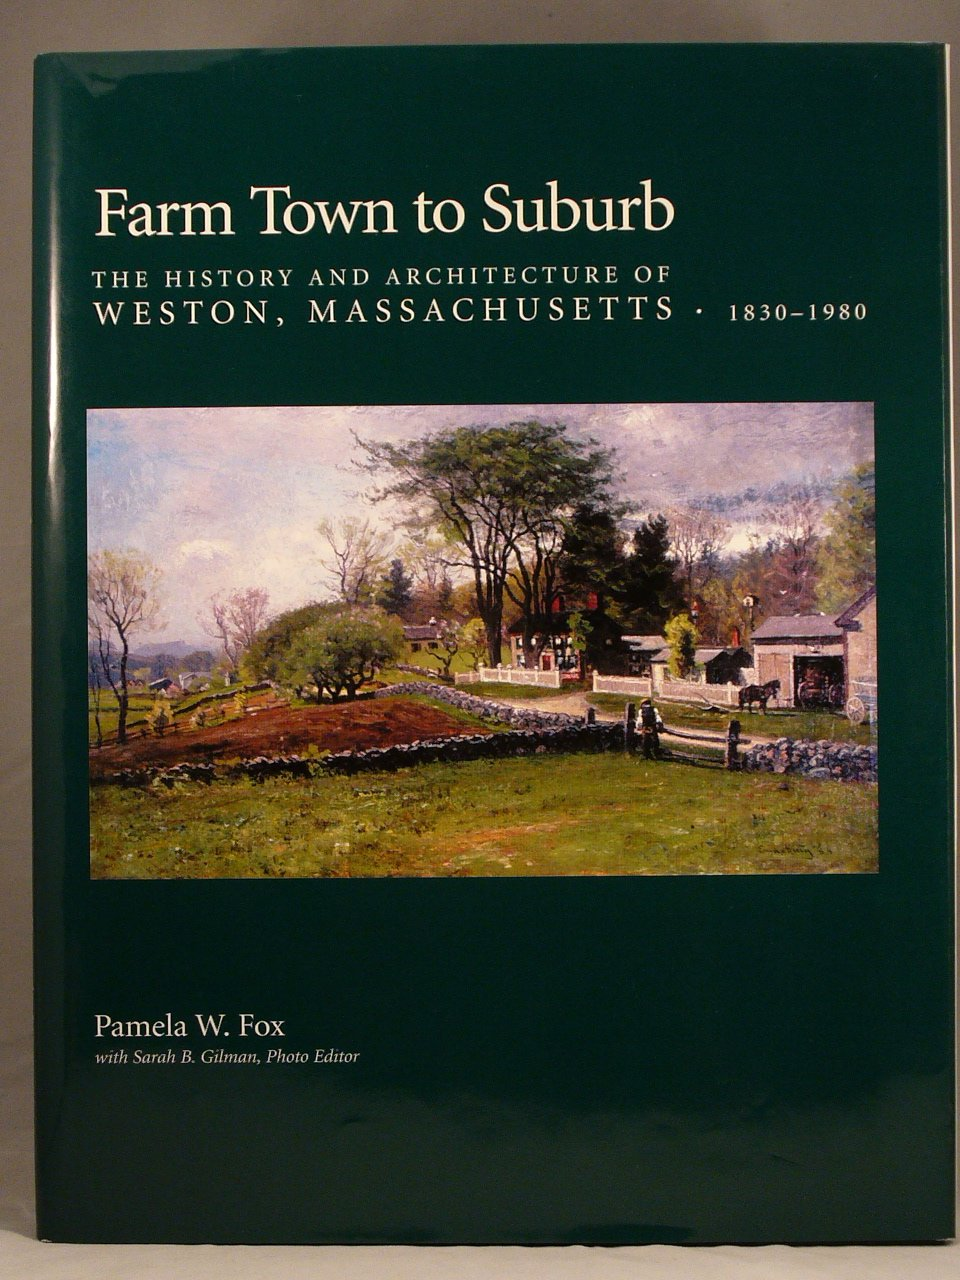 Farm Town to Suburb: The History and Architecture of Weston, Massachusetts, 1830-1980 PDF